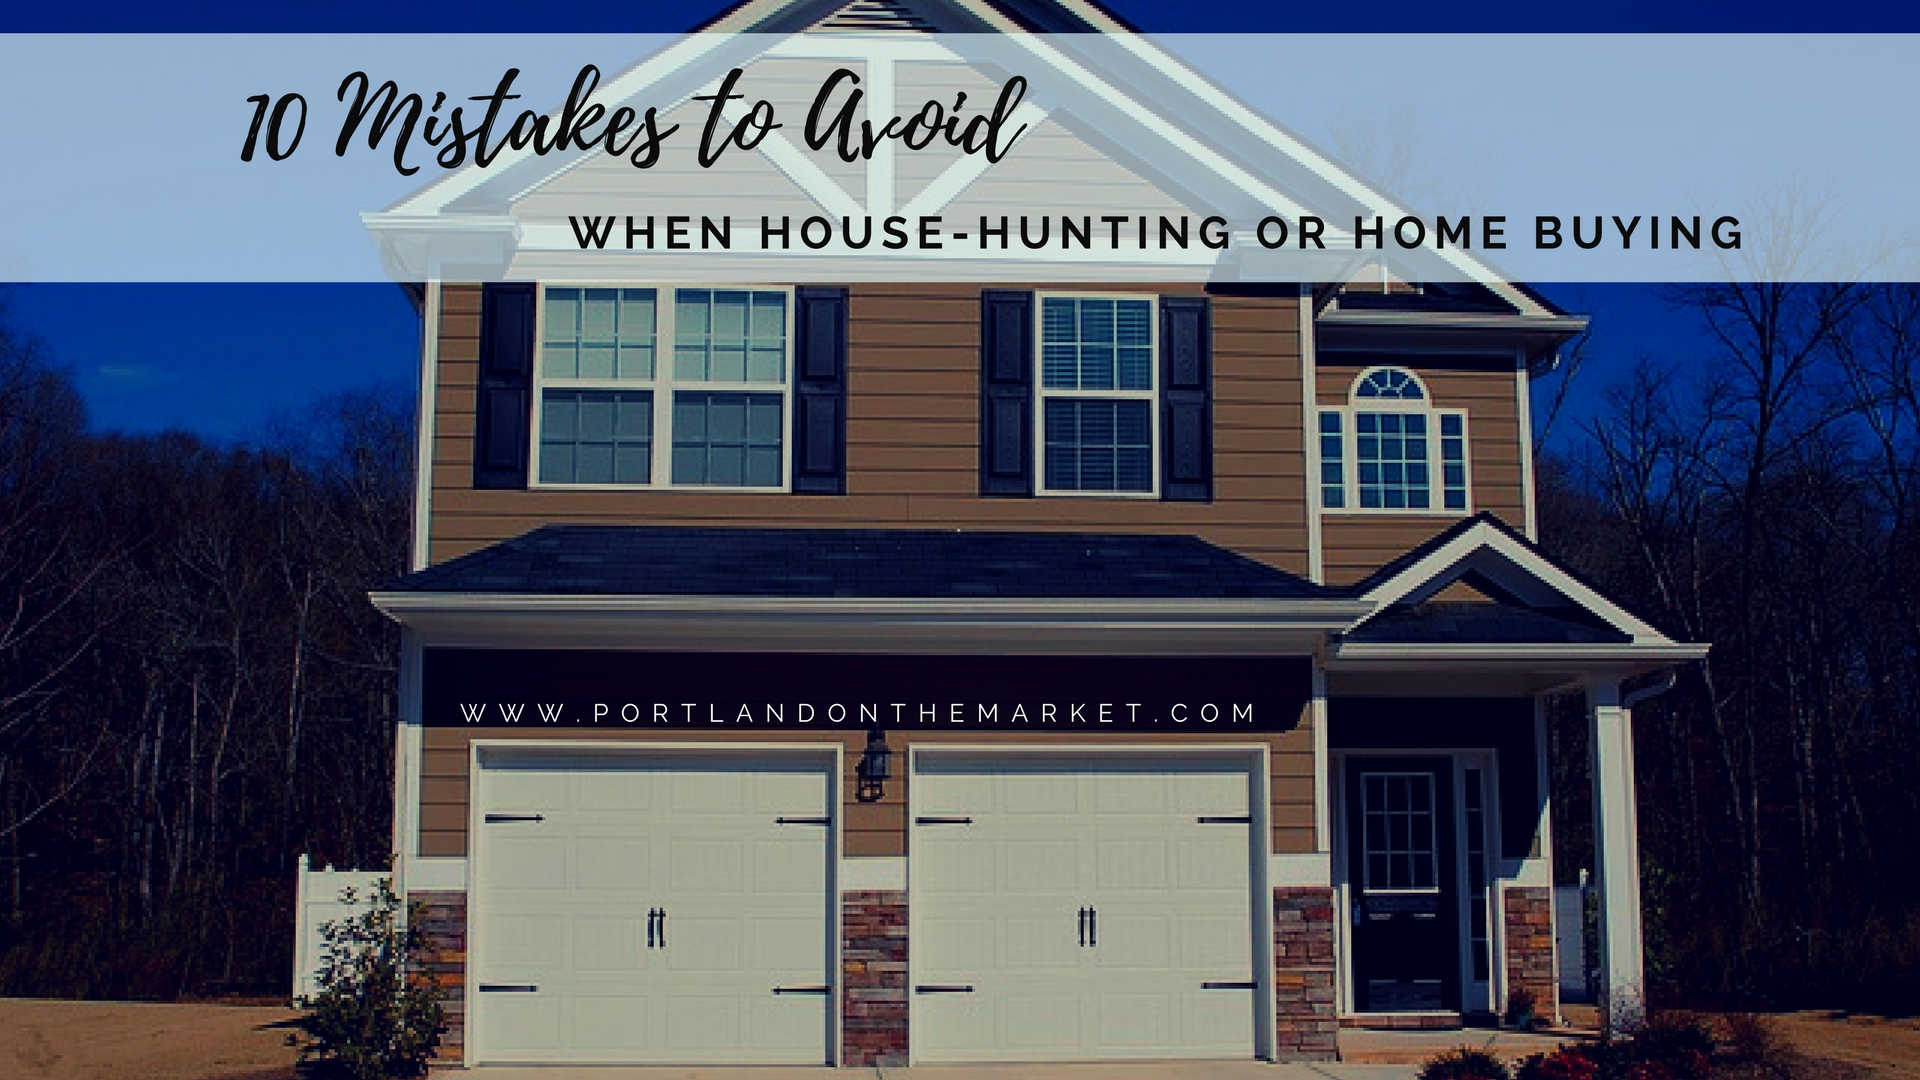 10 House hunting and buying mistakes to avoid